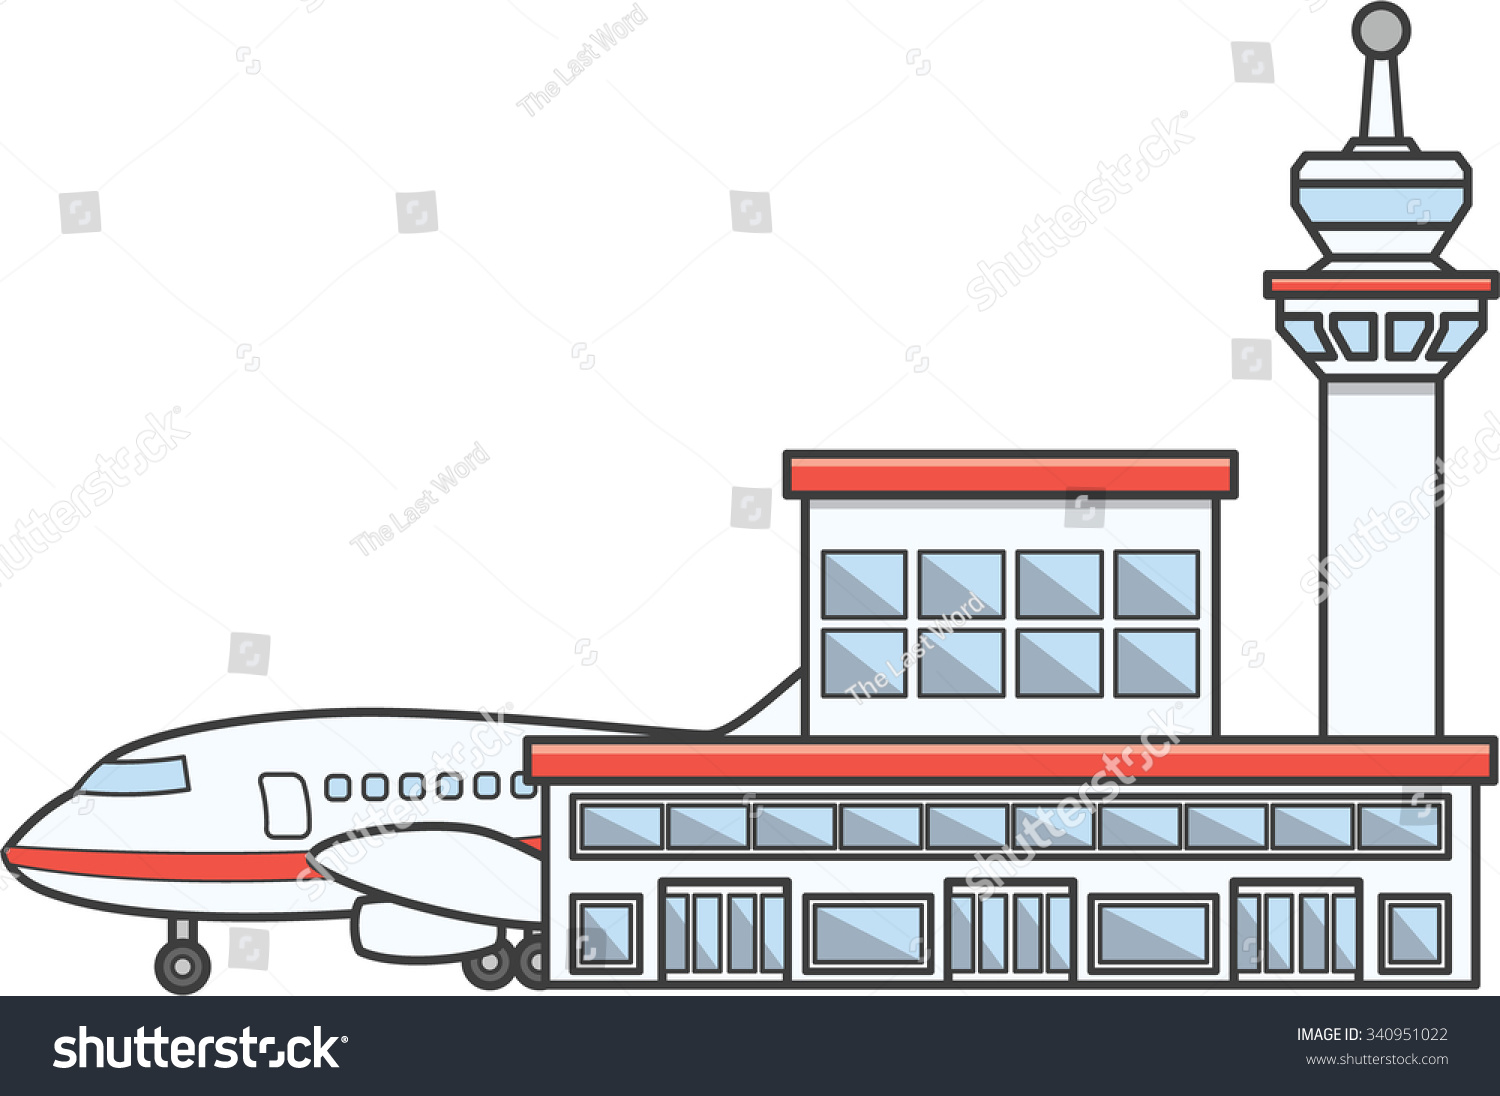 airport safety clipart - photo #22